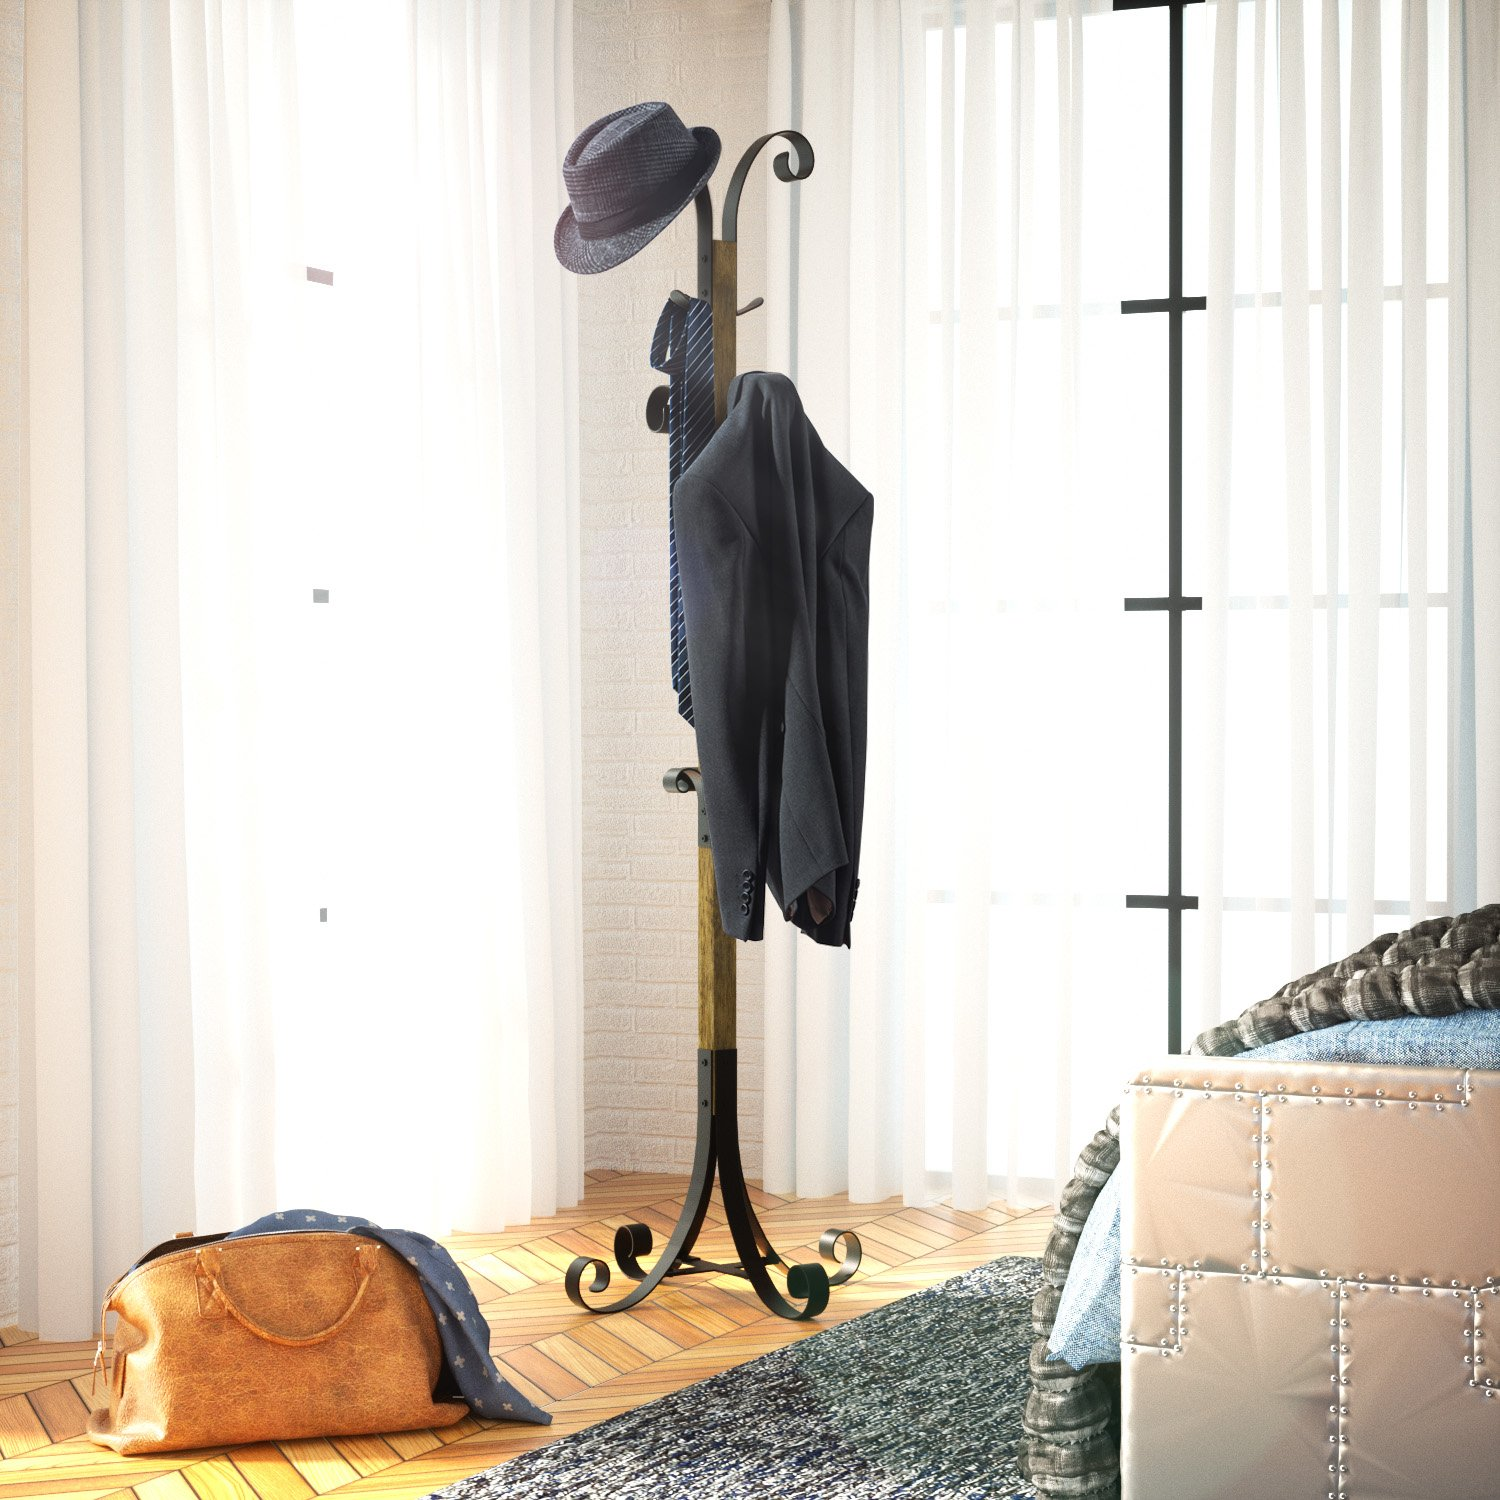 Perfect Free Coat And Boot Rack Image: RooLee Coat Rack Free Standing Clothes Tree Coat Hanger